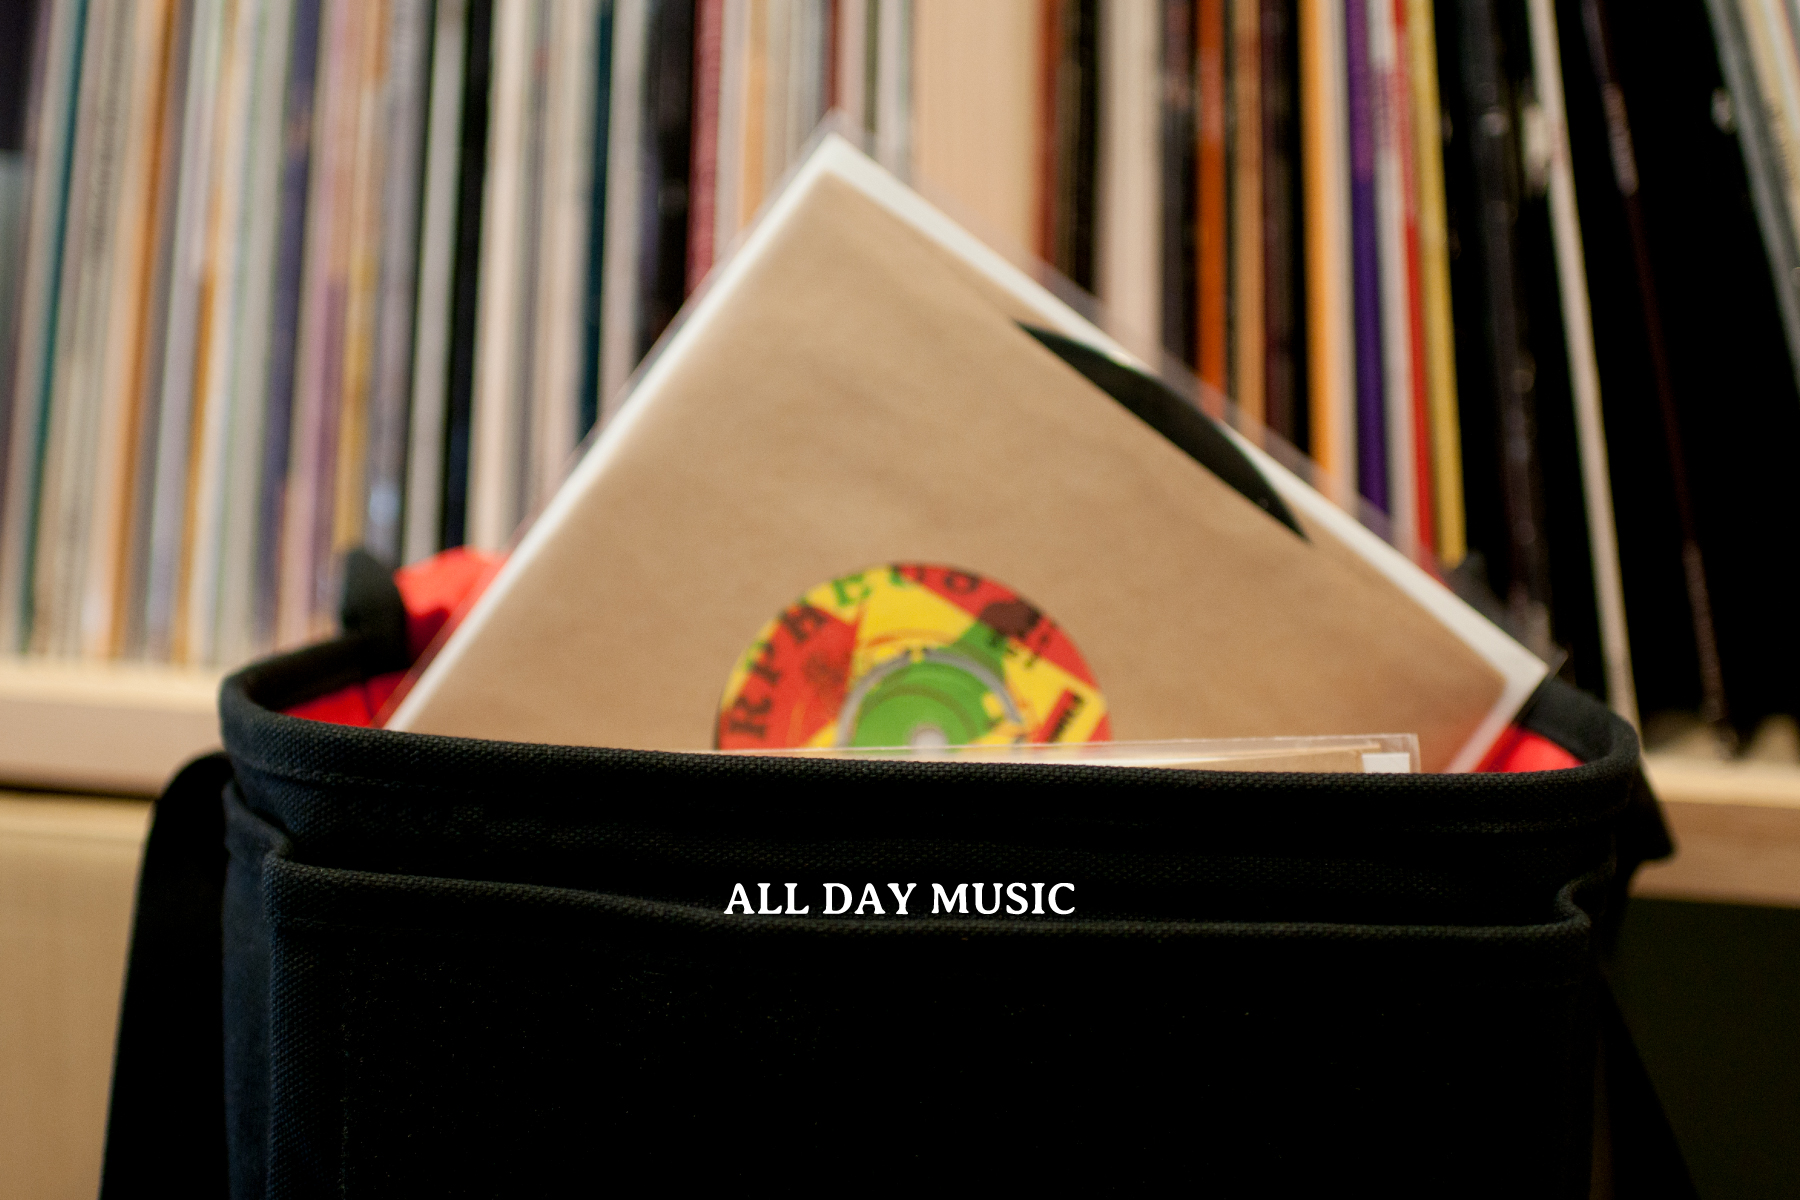 ALL DAY MUSIC